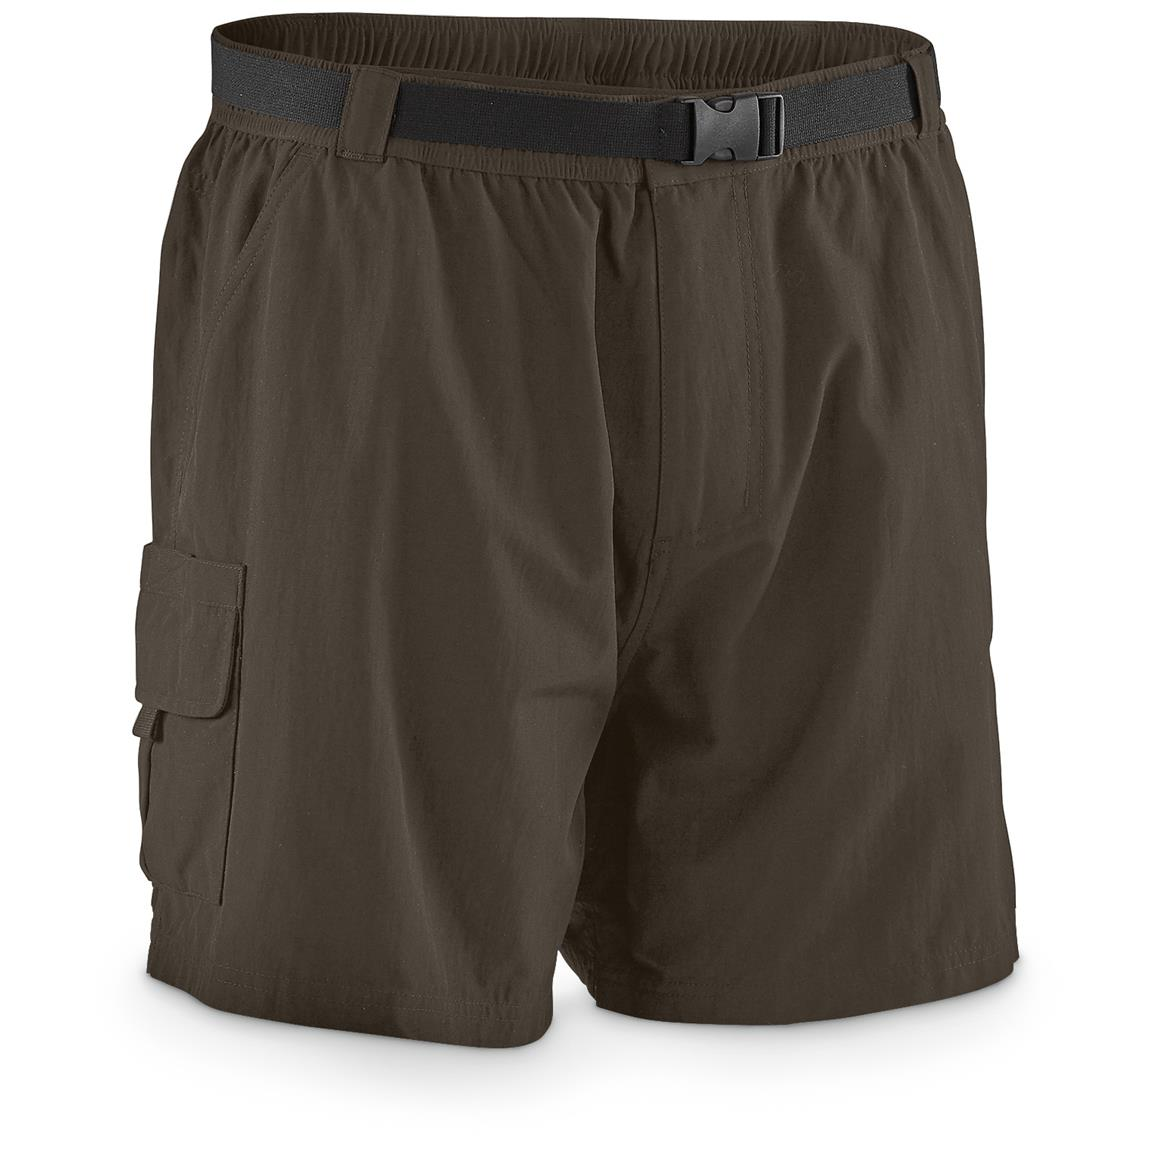 "Guide Gear Men's Cargo River Shorts, 6"" Inseam, Bark"